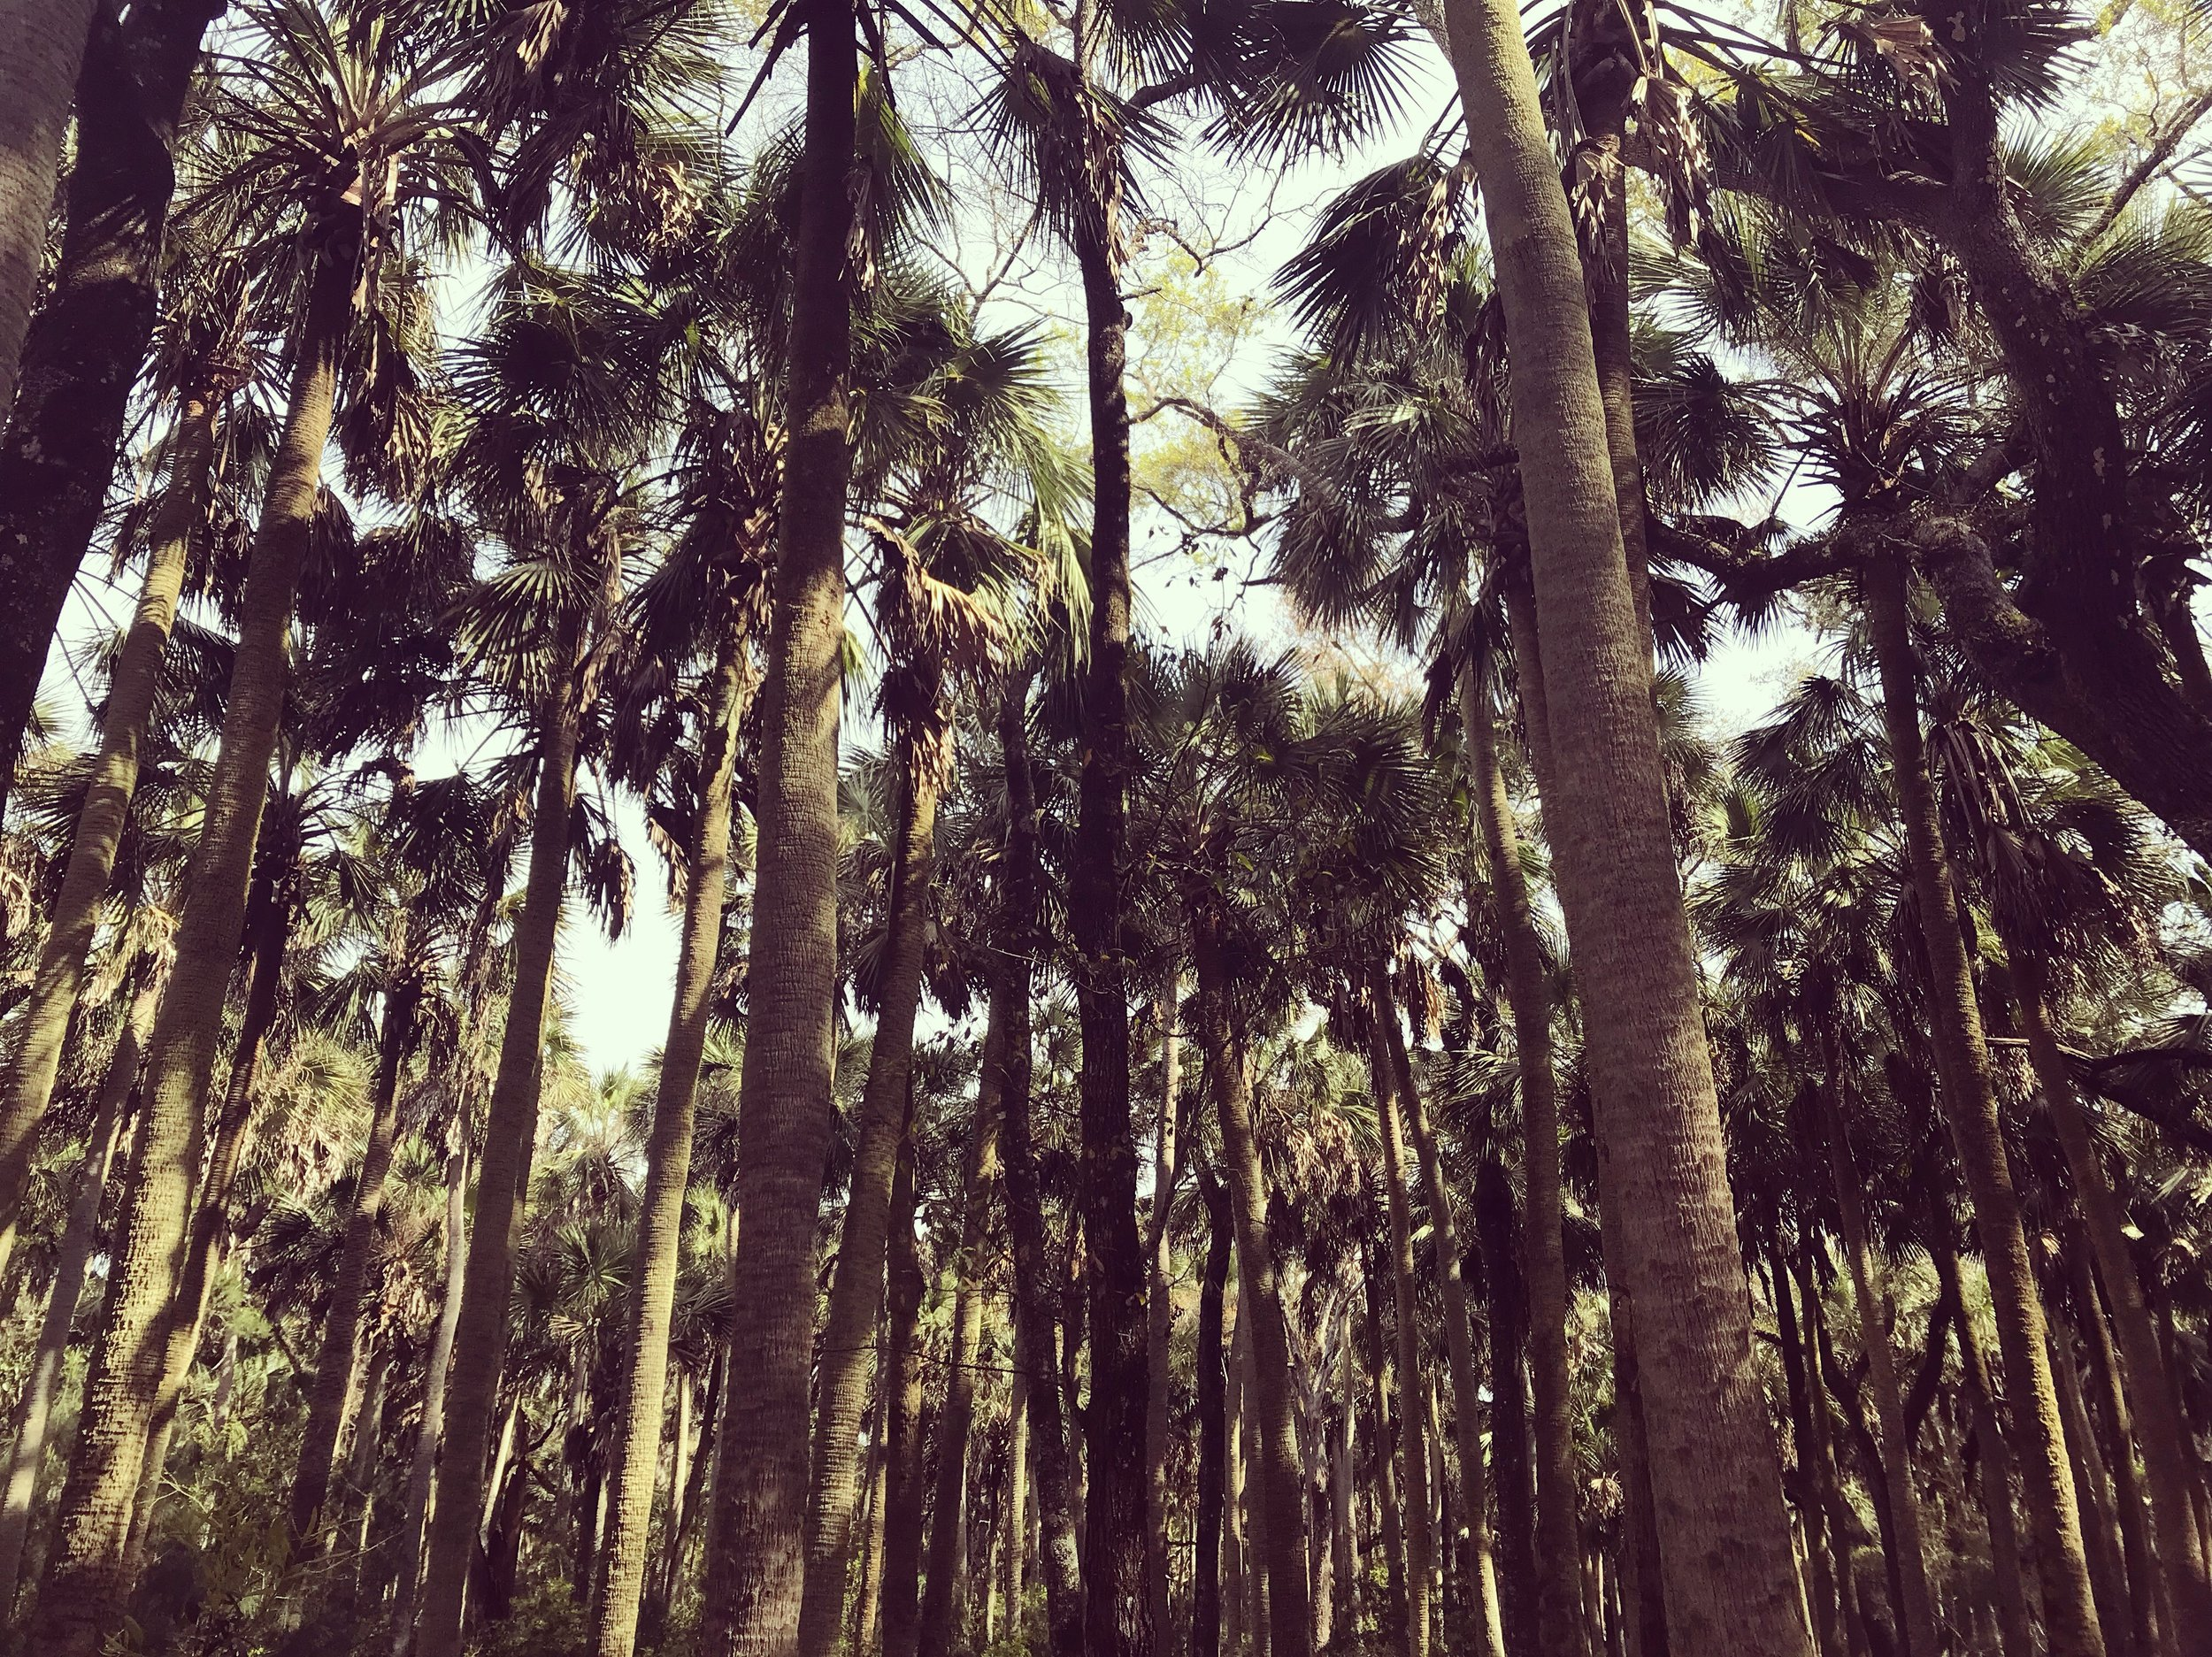 Cathedral of Palms